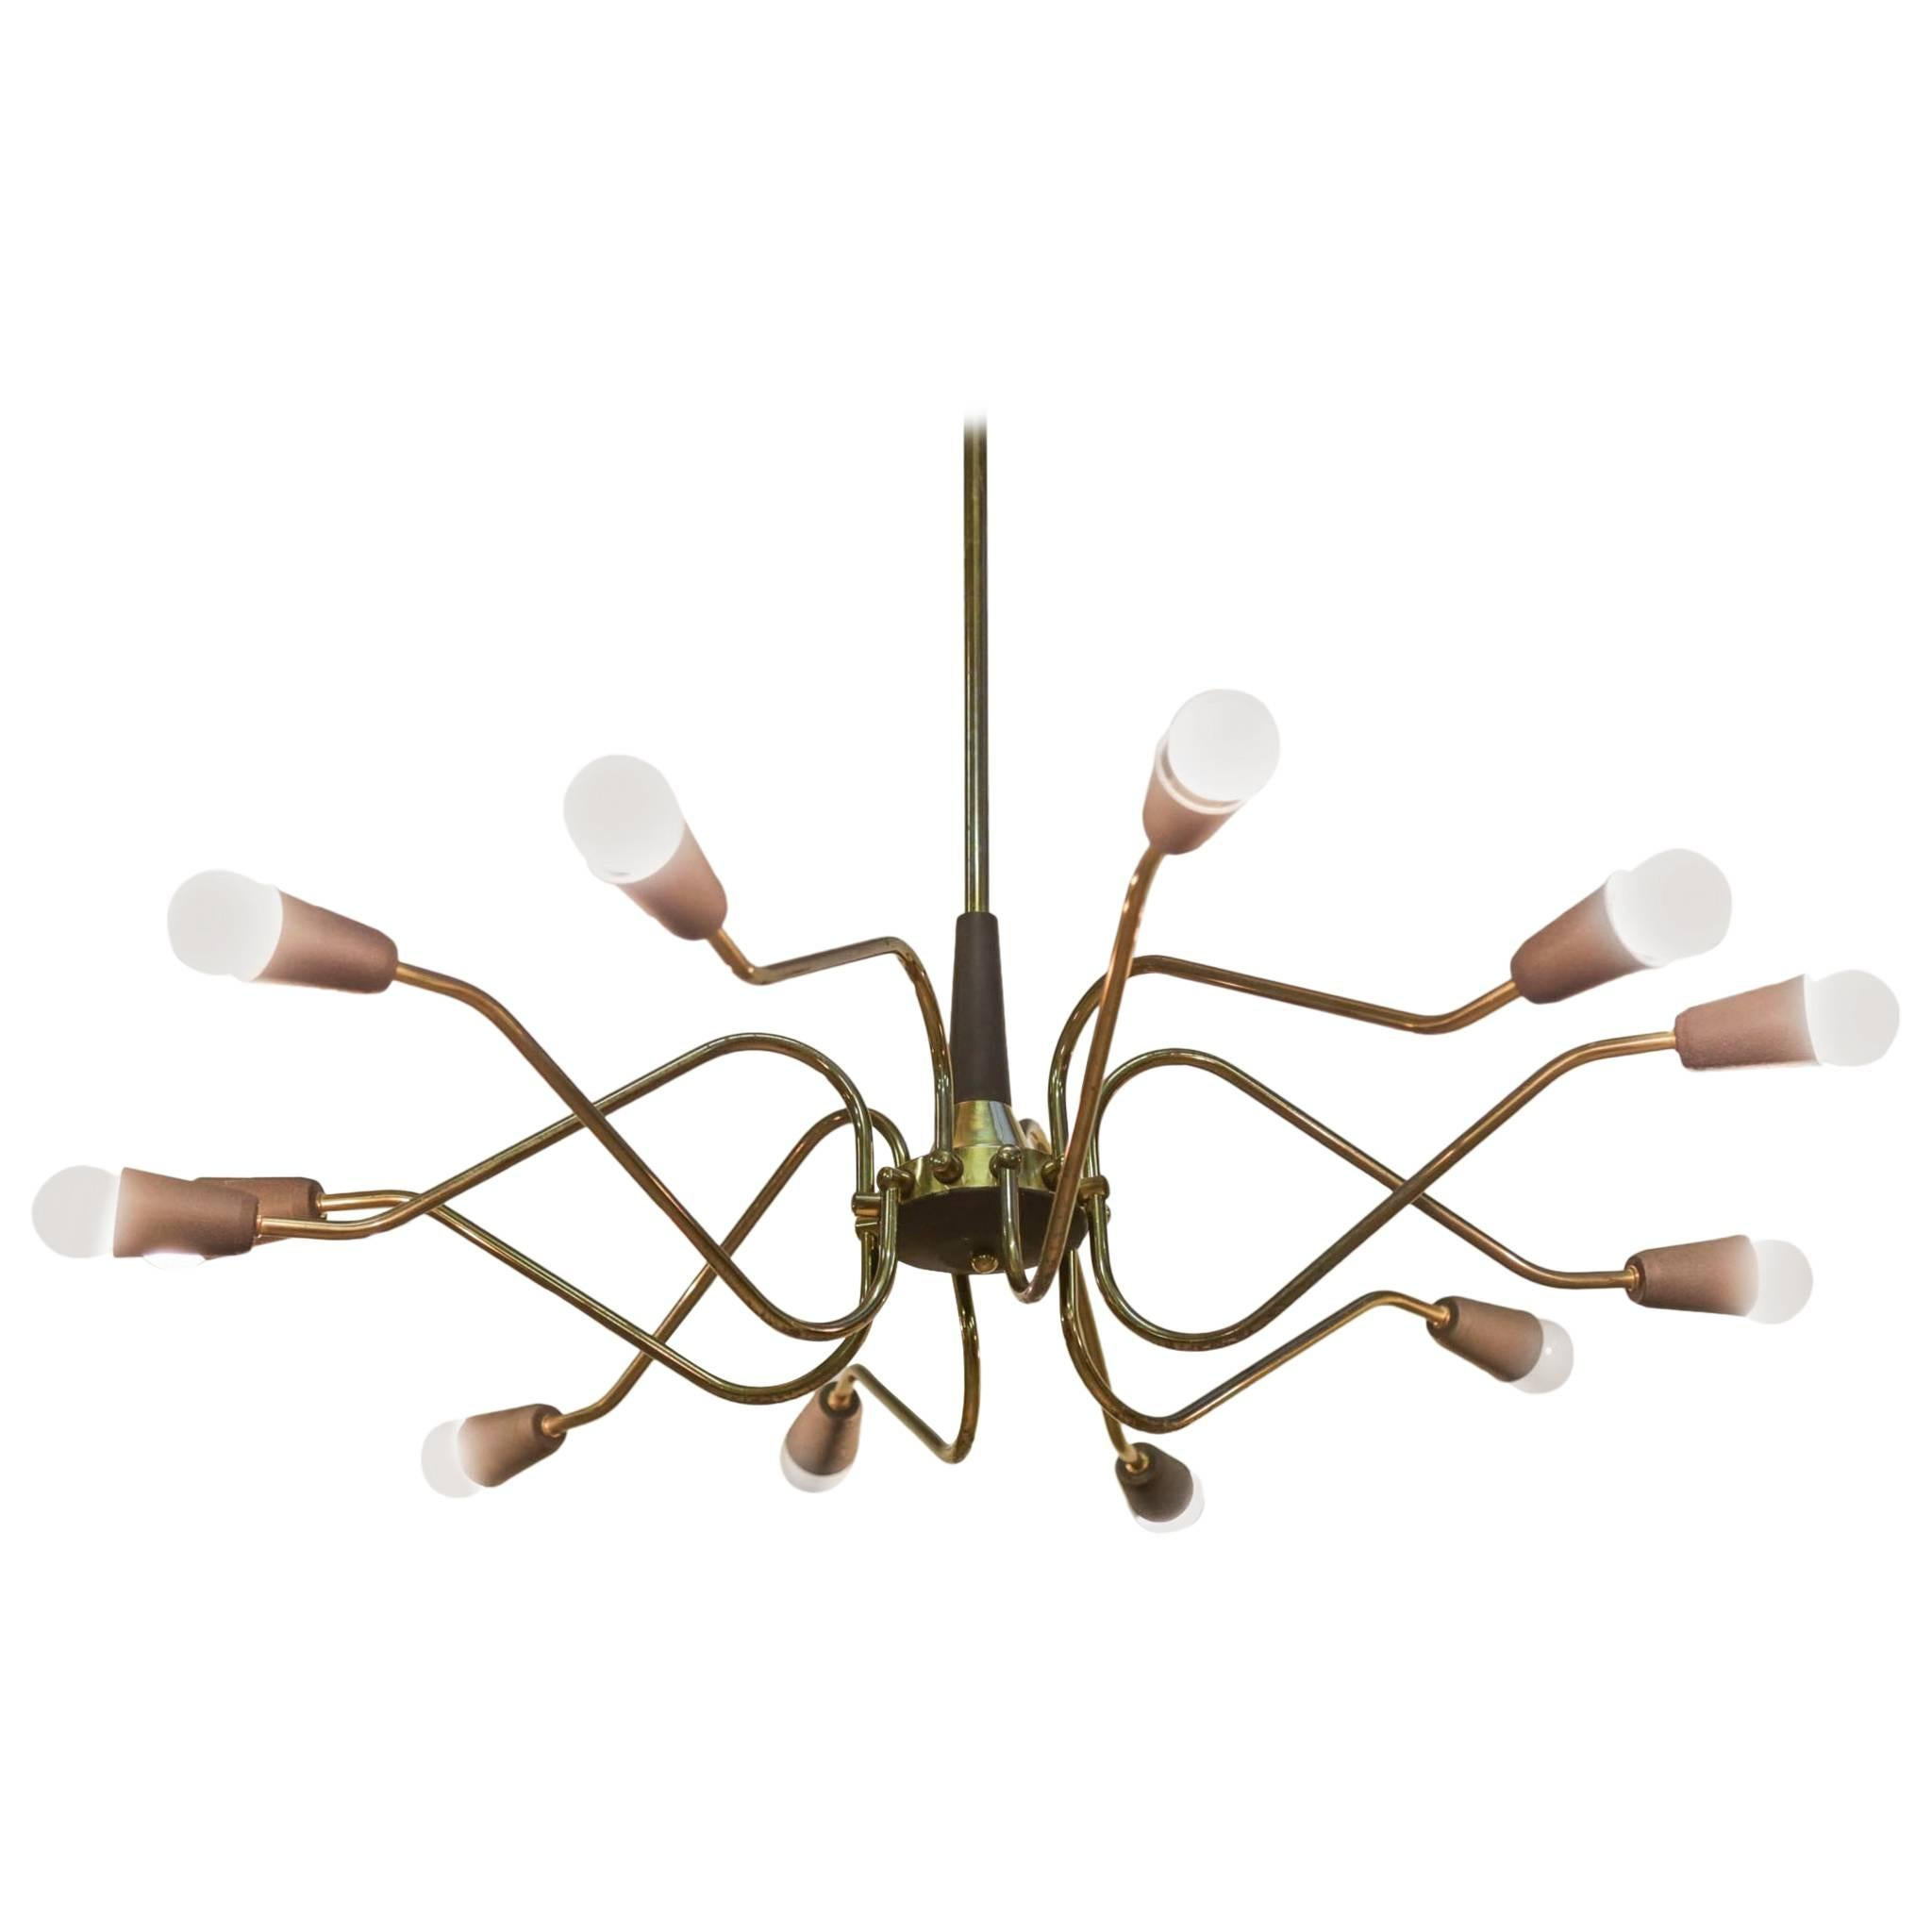 Italian Chandelier in the Style of Stilnovo, 1960s